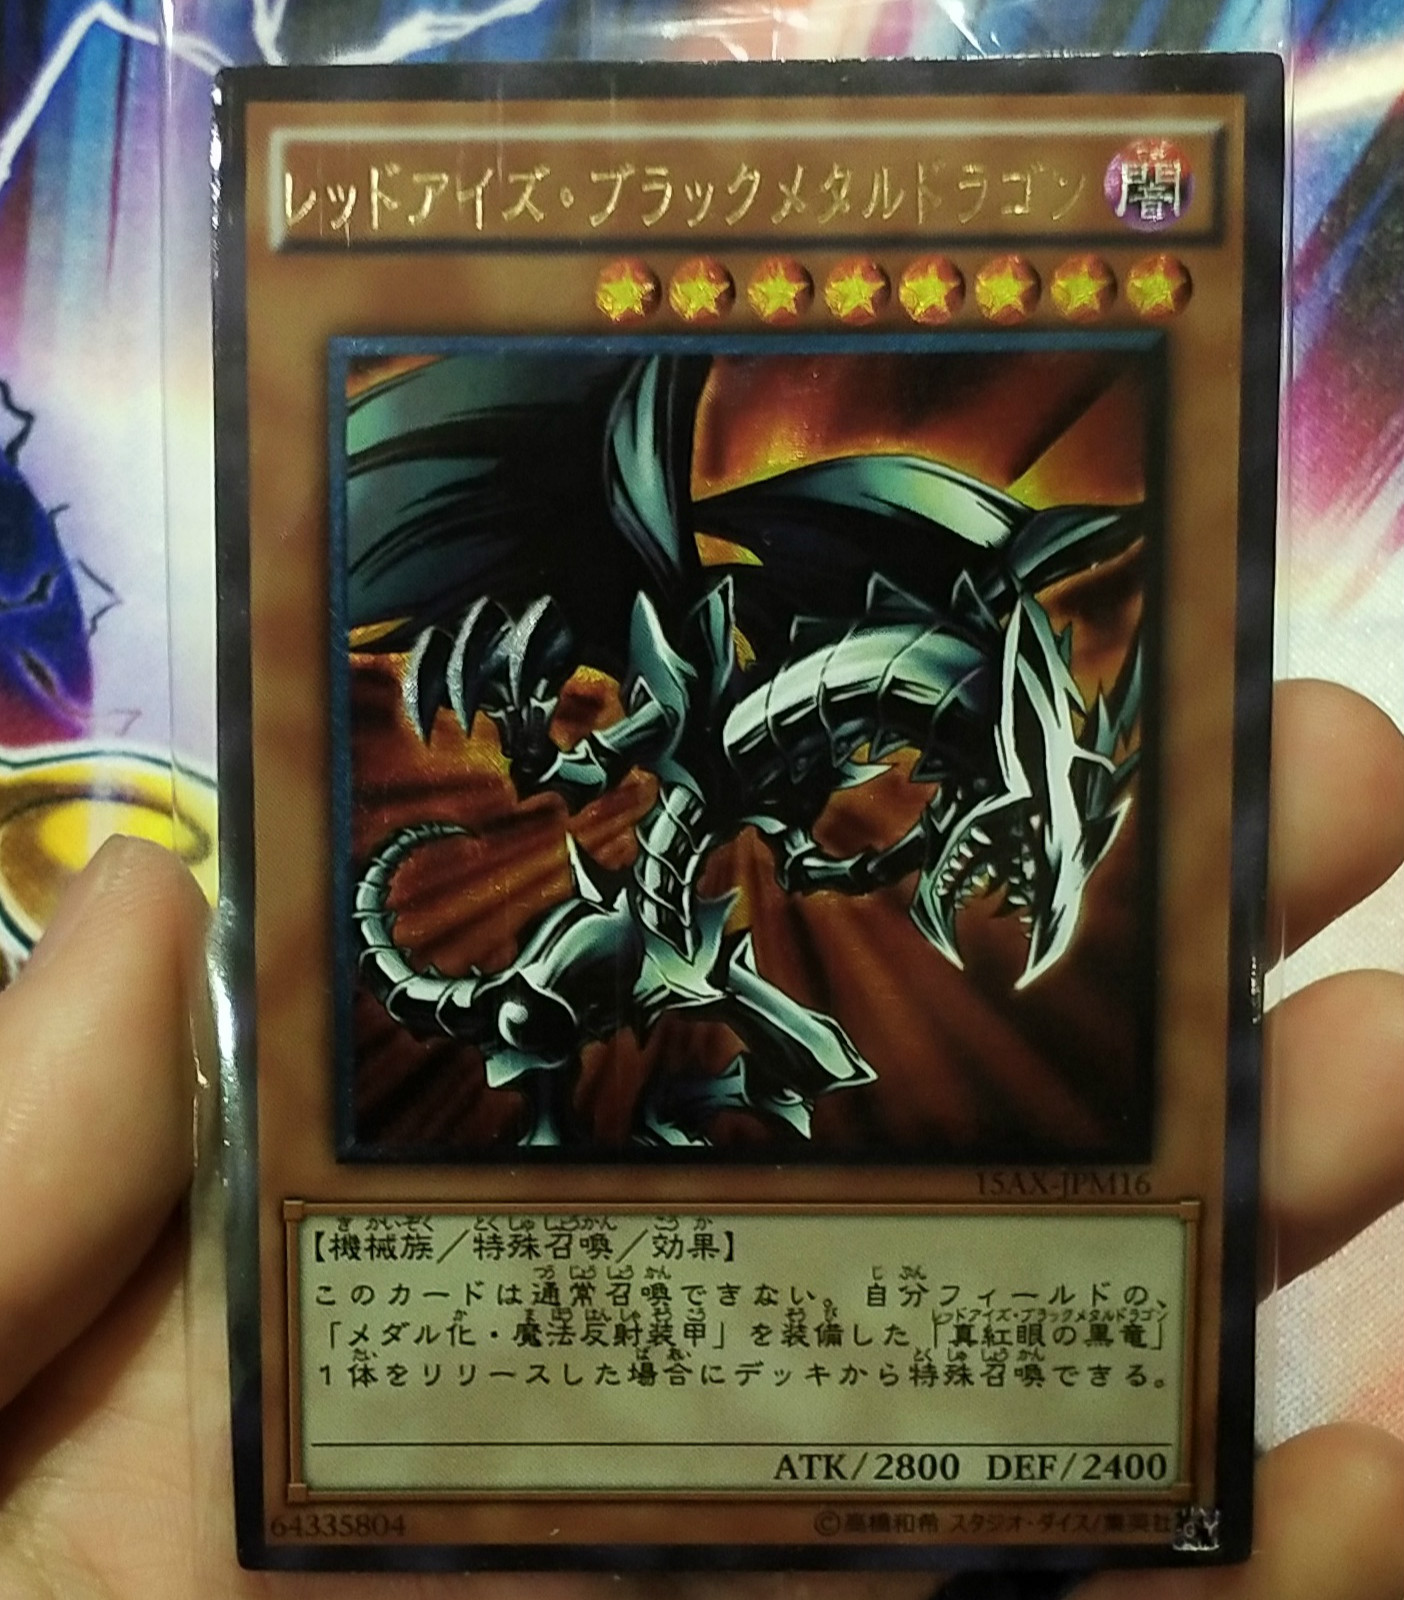 Yu Gi Oh DIY Red-Eyes Black Metal Dragon Colorful Toys Hobbies Hobby Collectibles Game Collection Anime Cards